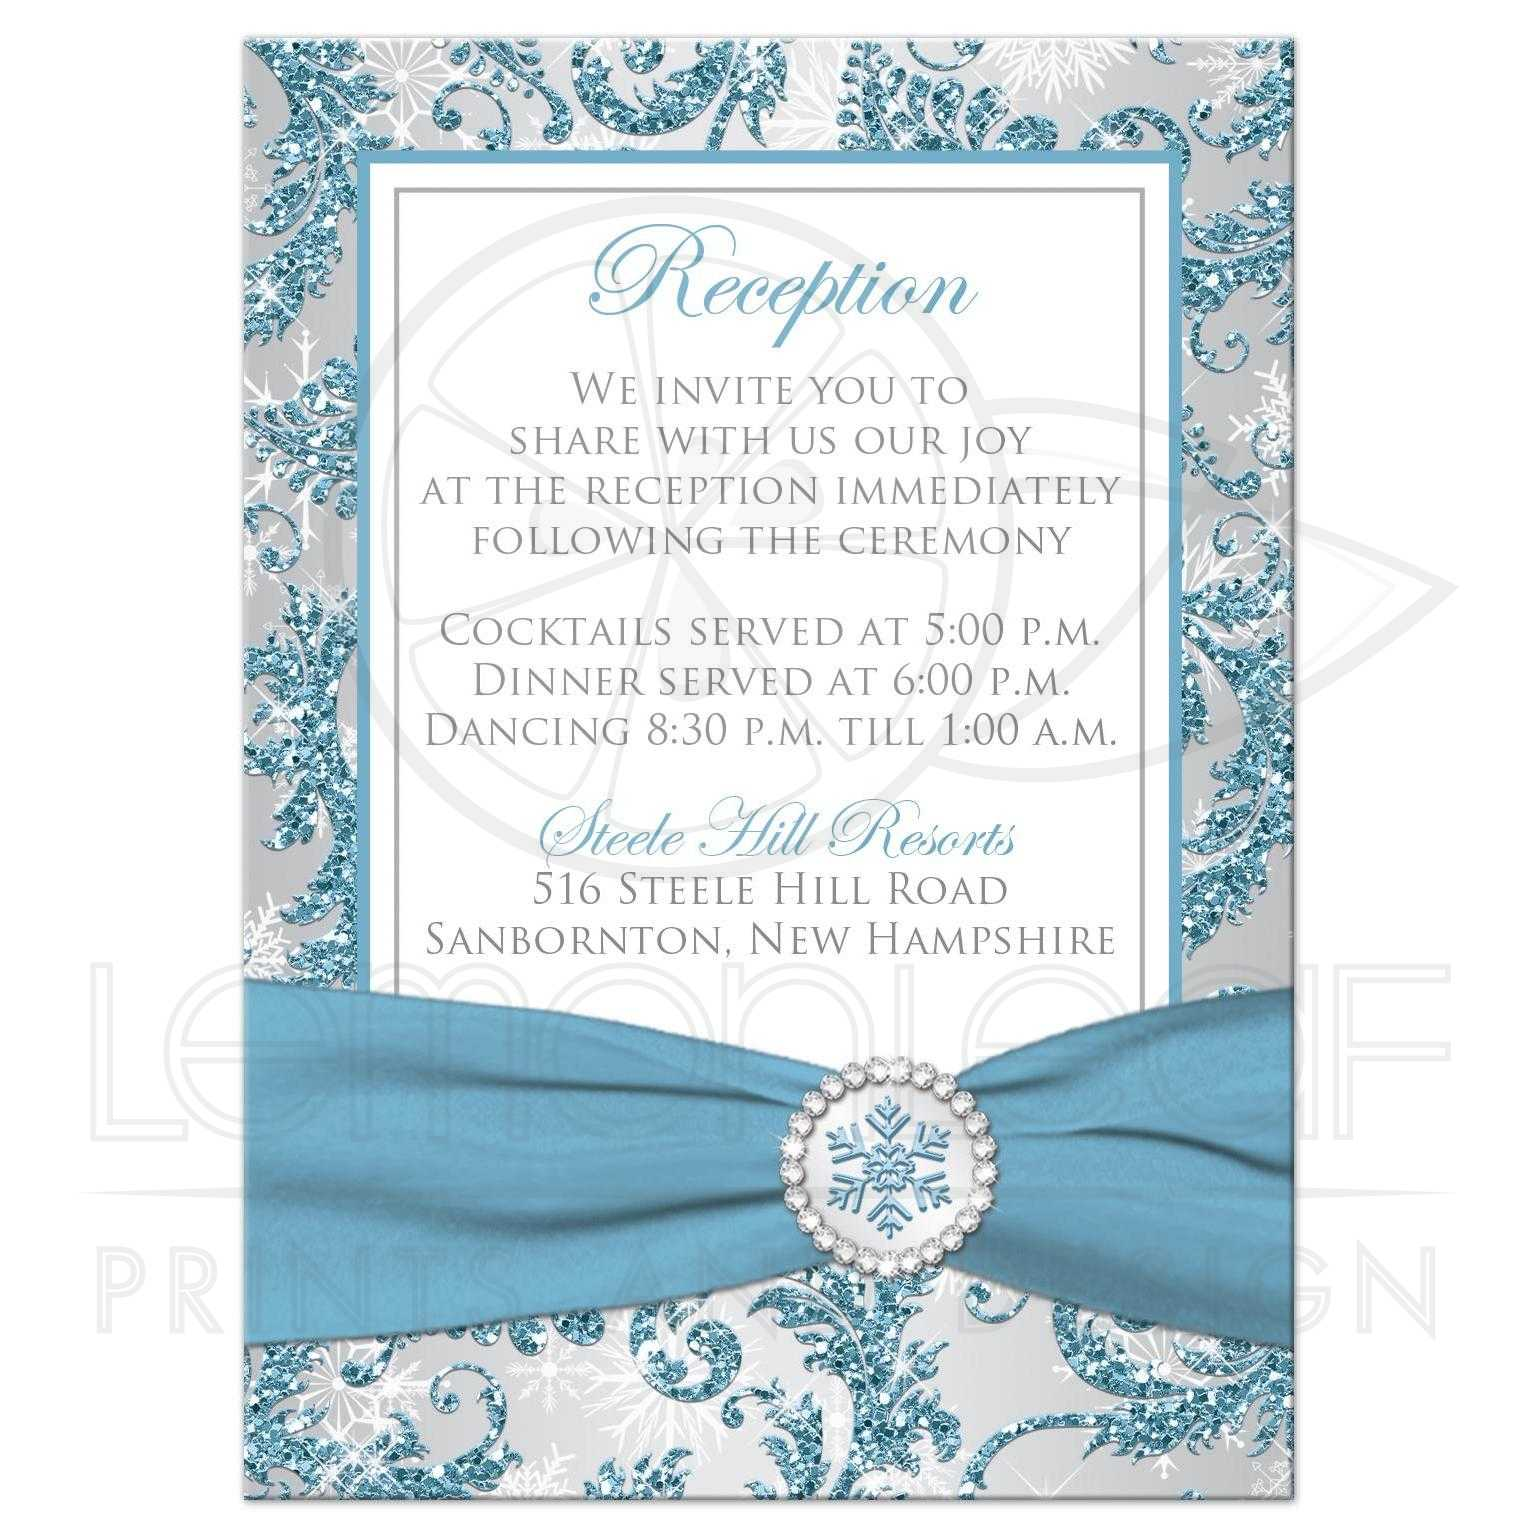 Wedding Enclosure Card | Winter Wonderland 3 | Ice Blue, Silver Gray ...